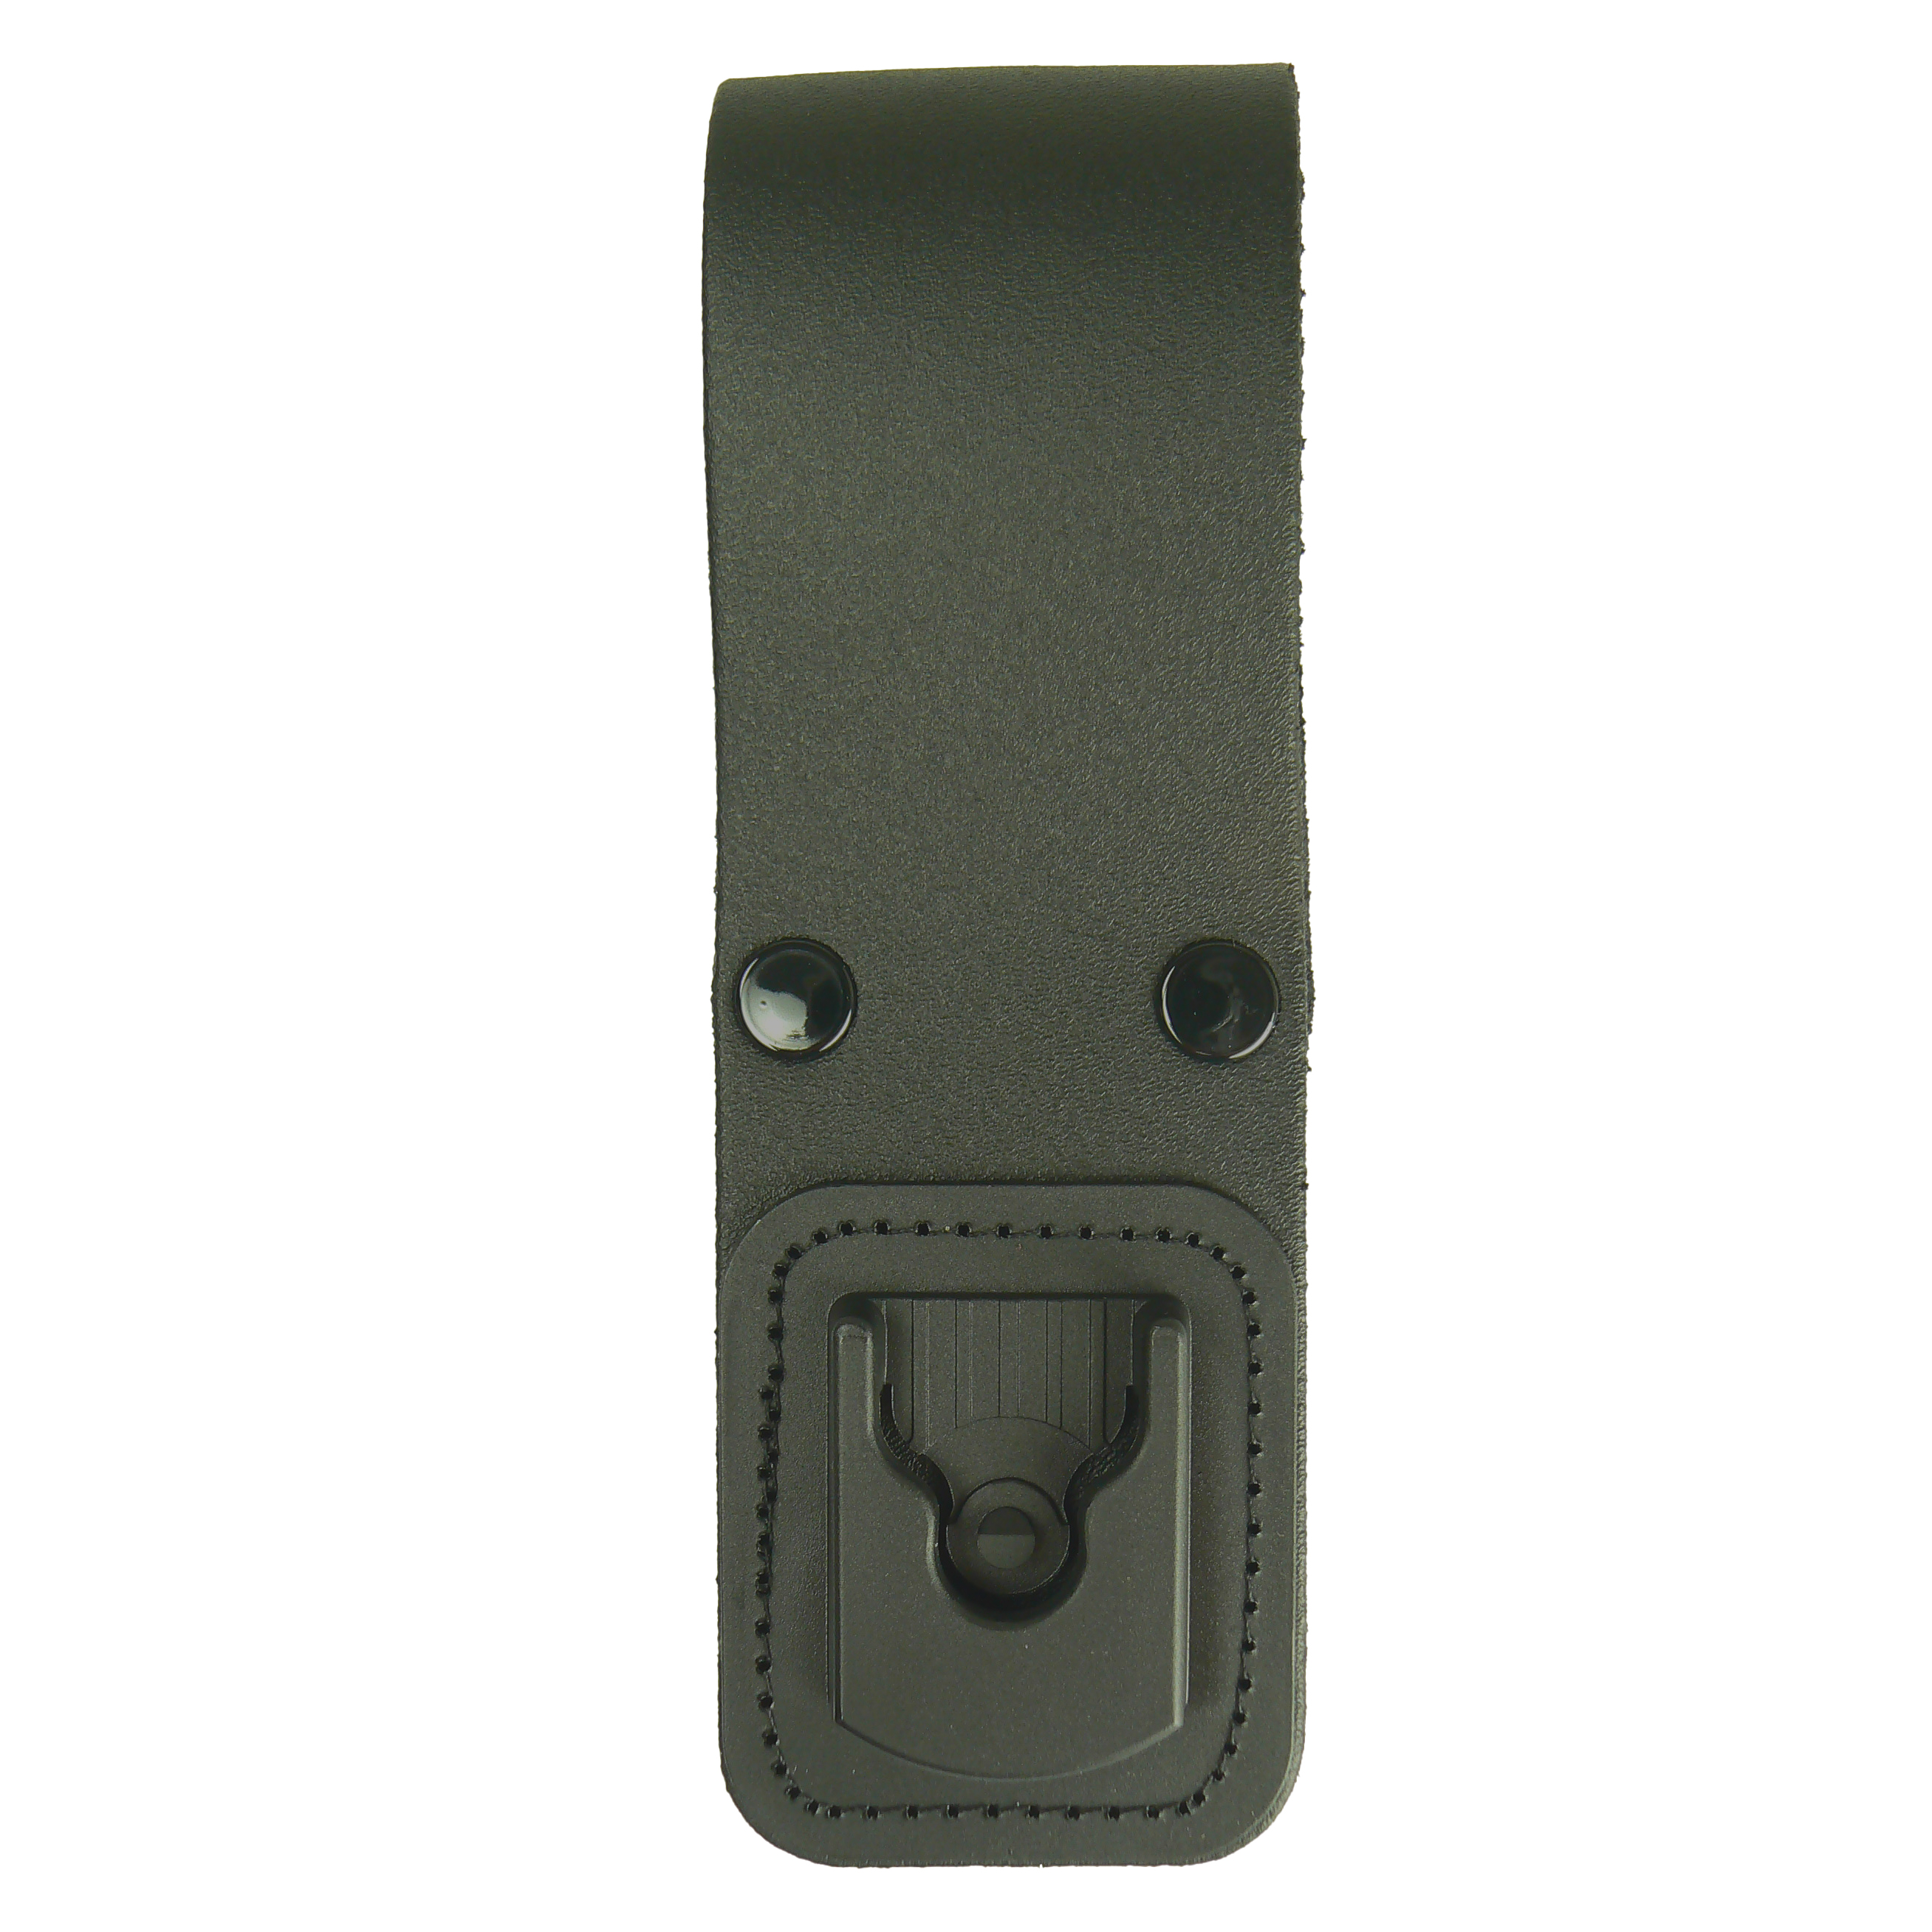 Click-On belt extension leather for Tetra Radio